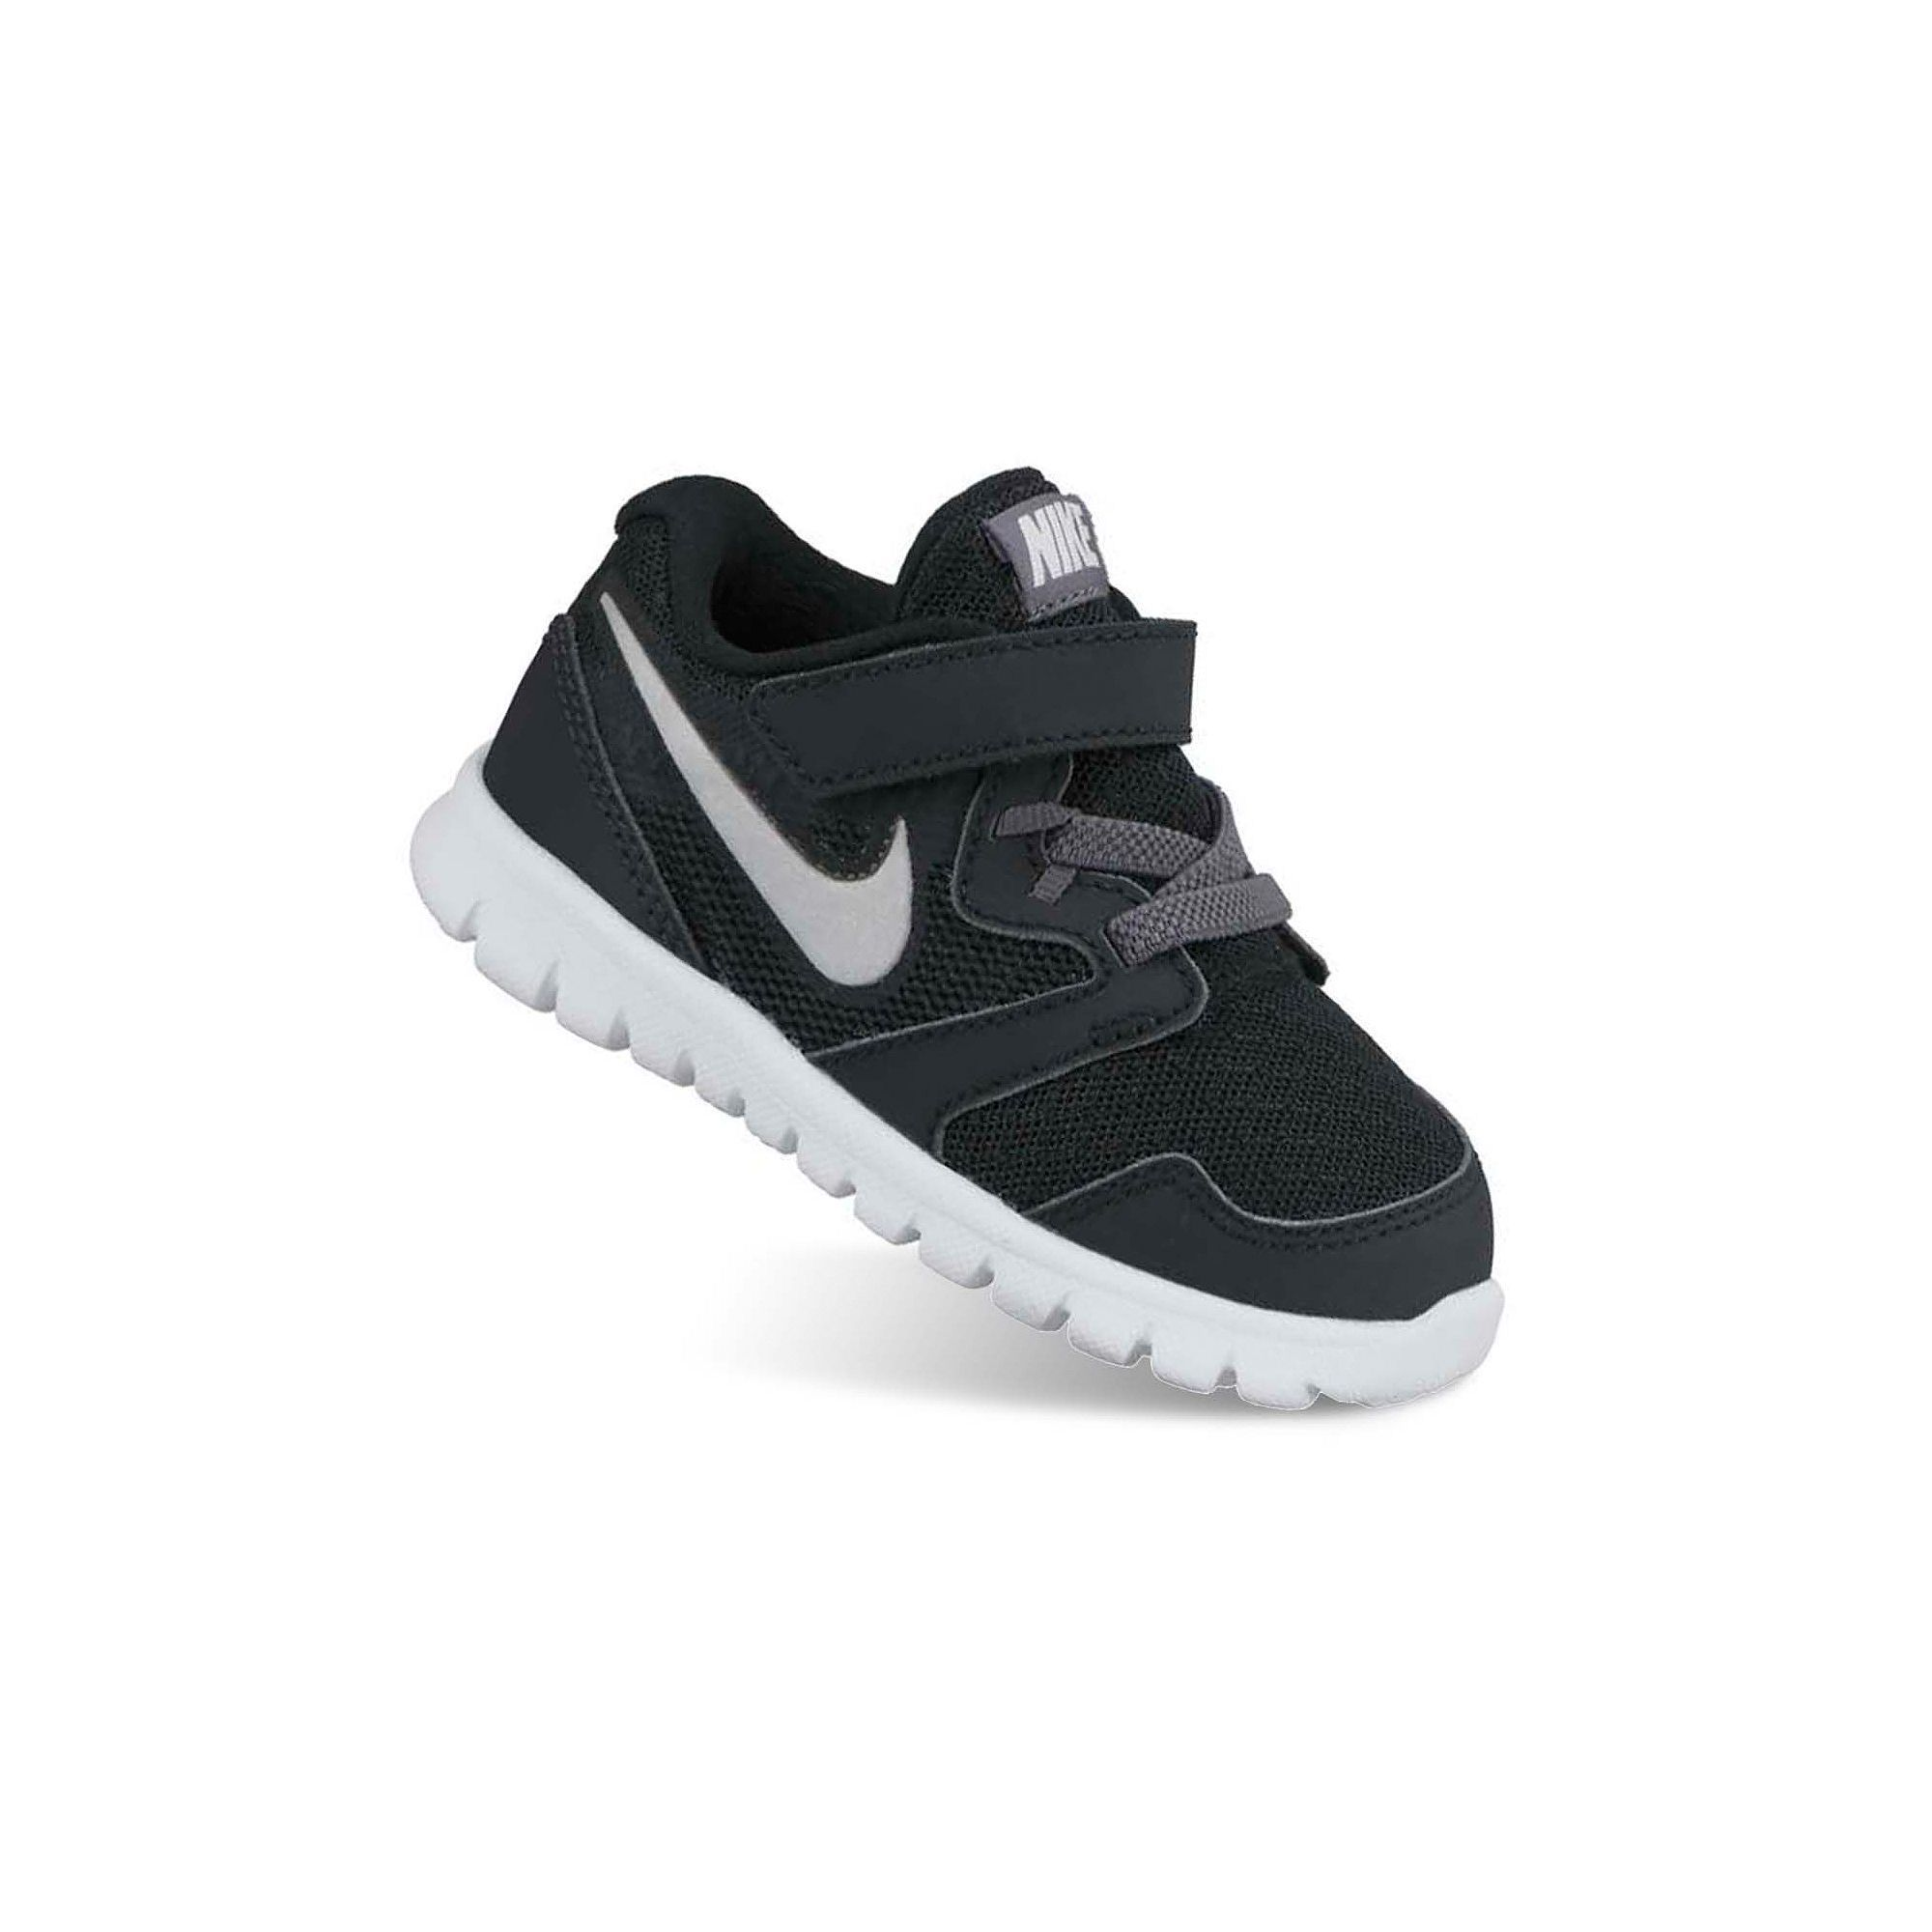 5229f574ef Nike Toddler Boys' Flex Experience Running Shoes | Products | Nike ...